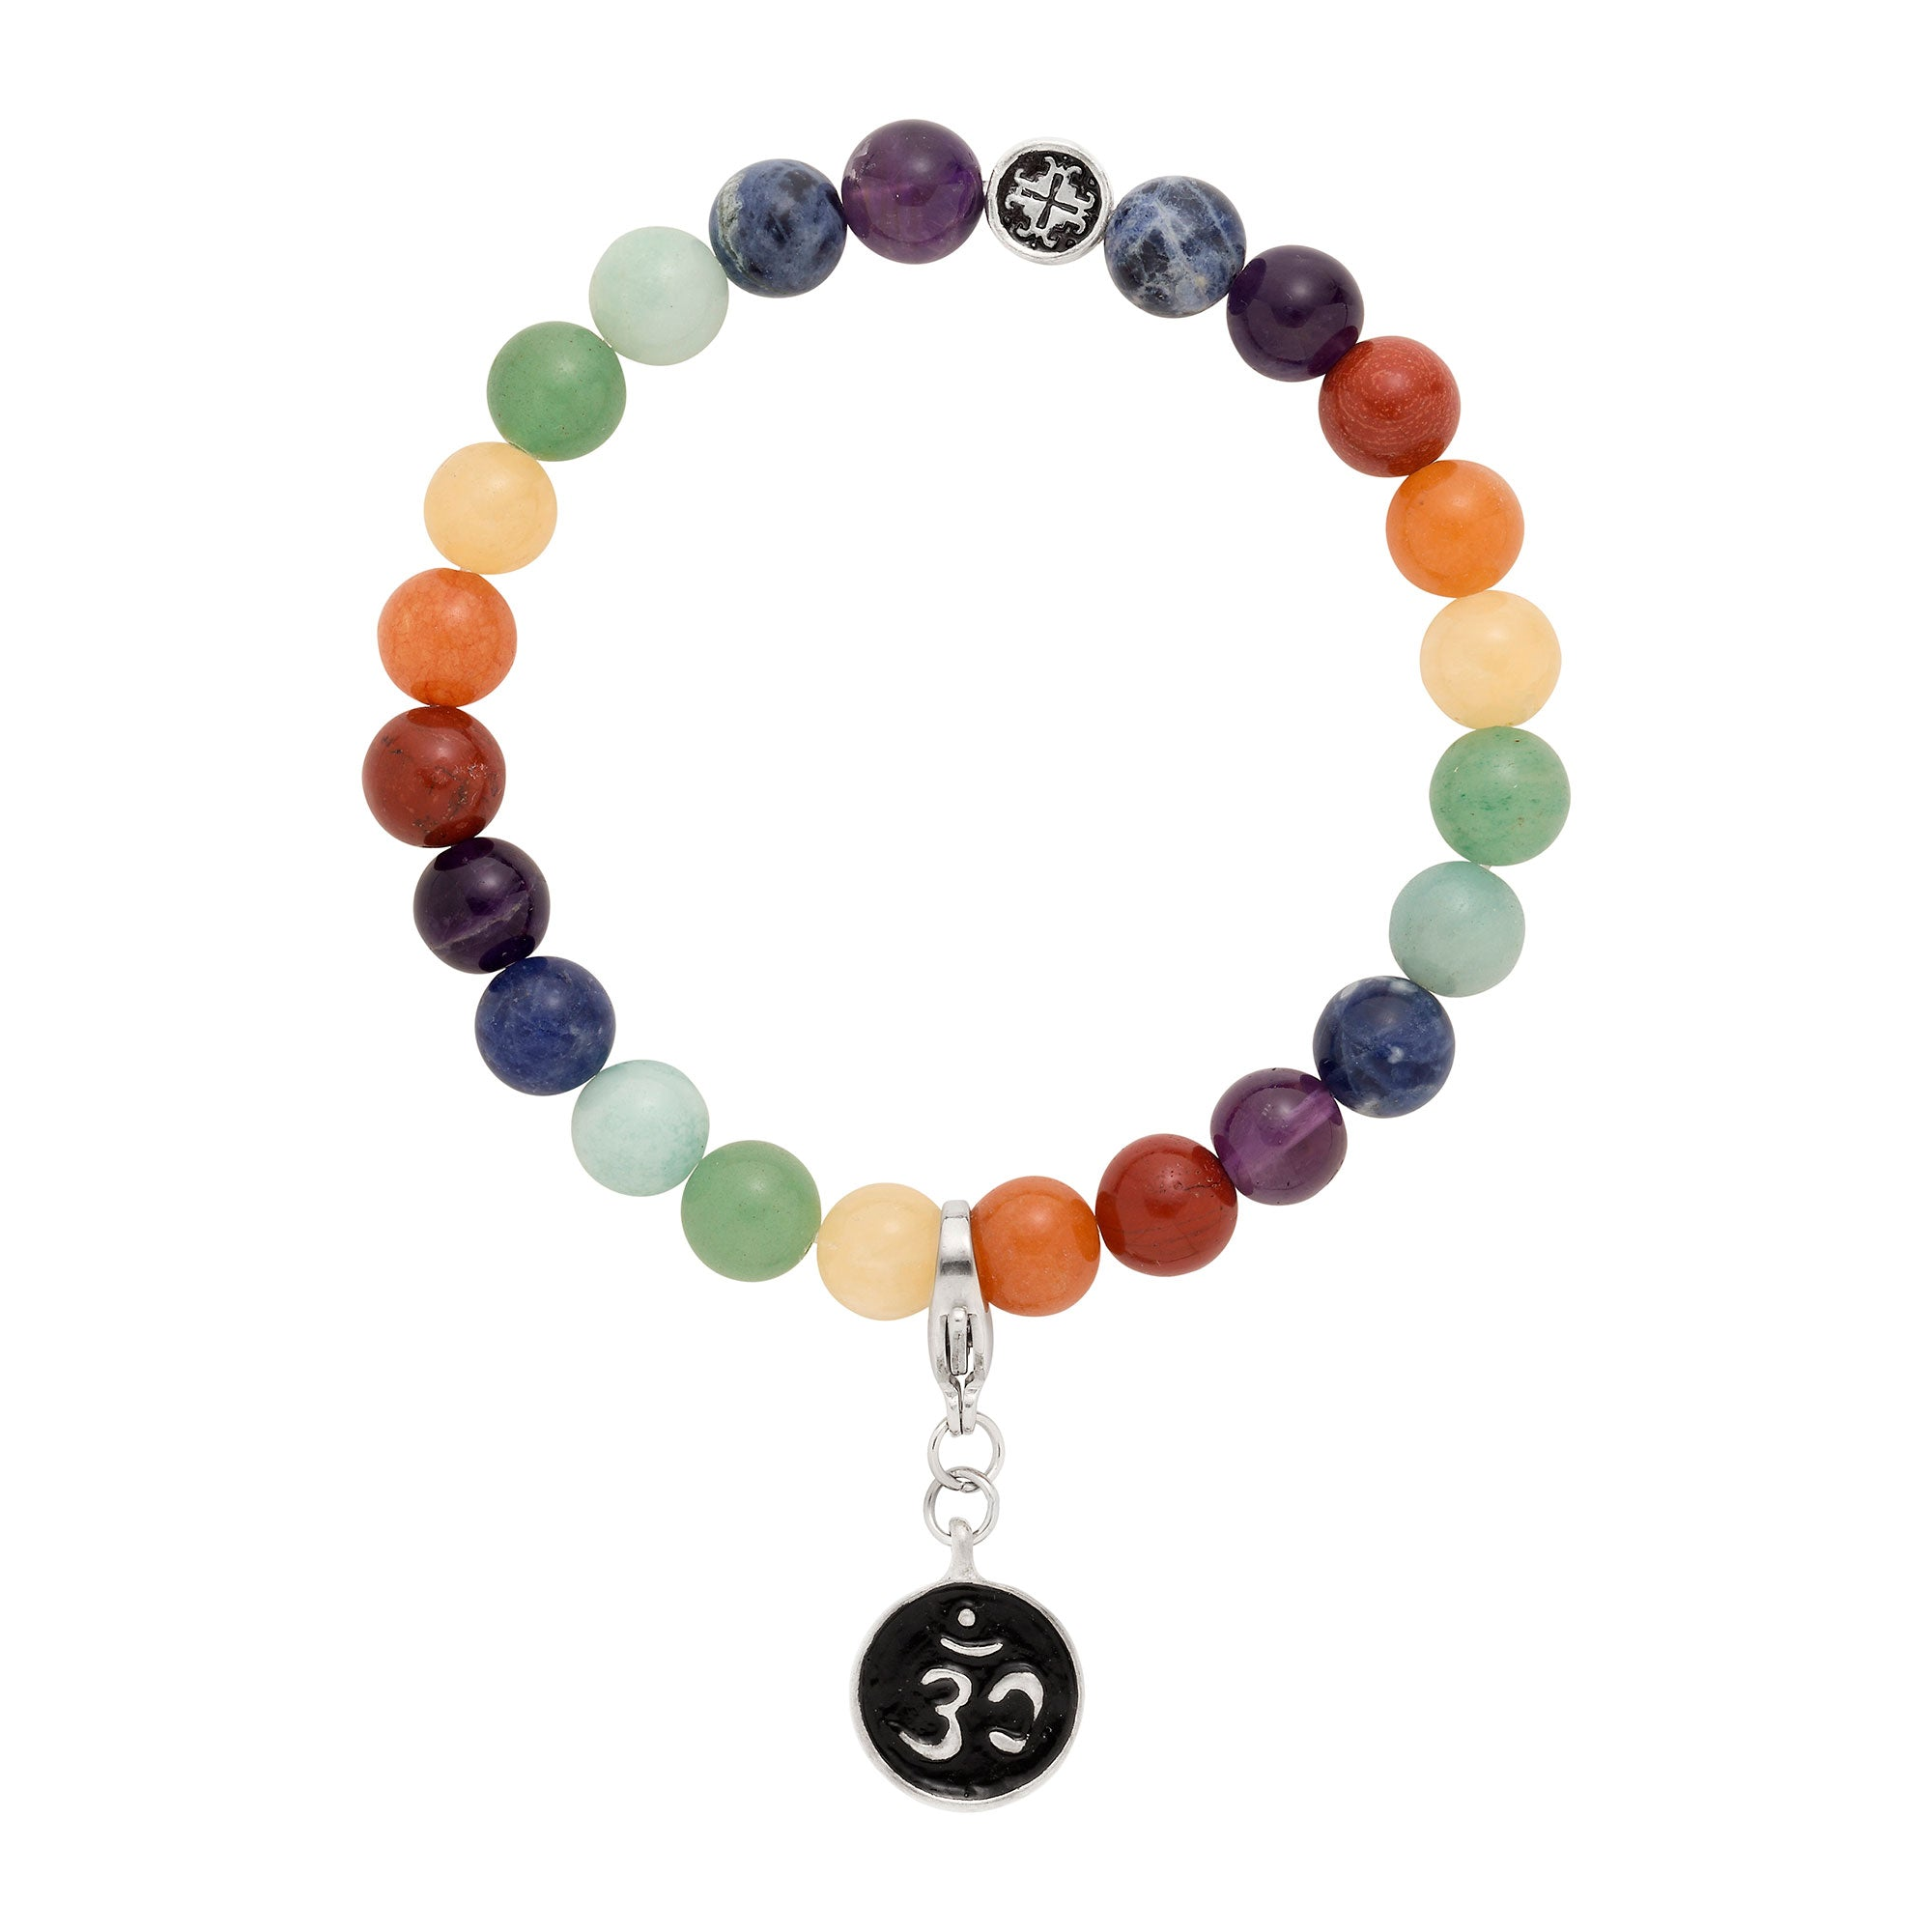 7 CHAKRAS Gemstone Mix Unisex Stretch Bracelet with Detachable Om Charm